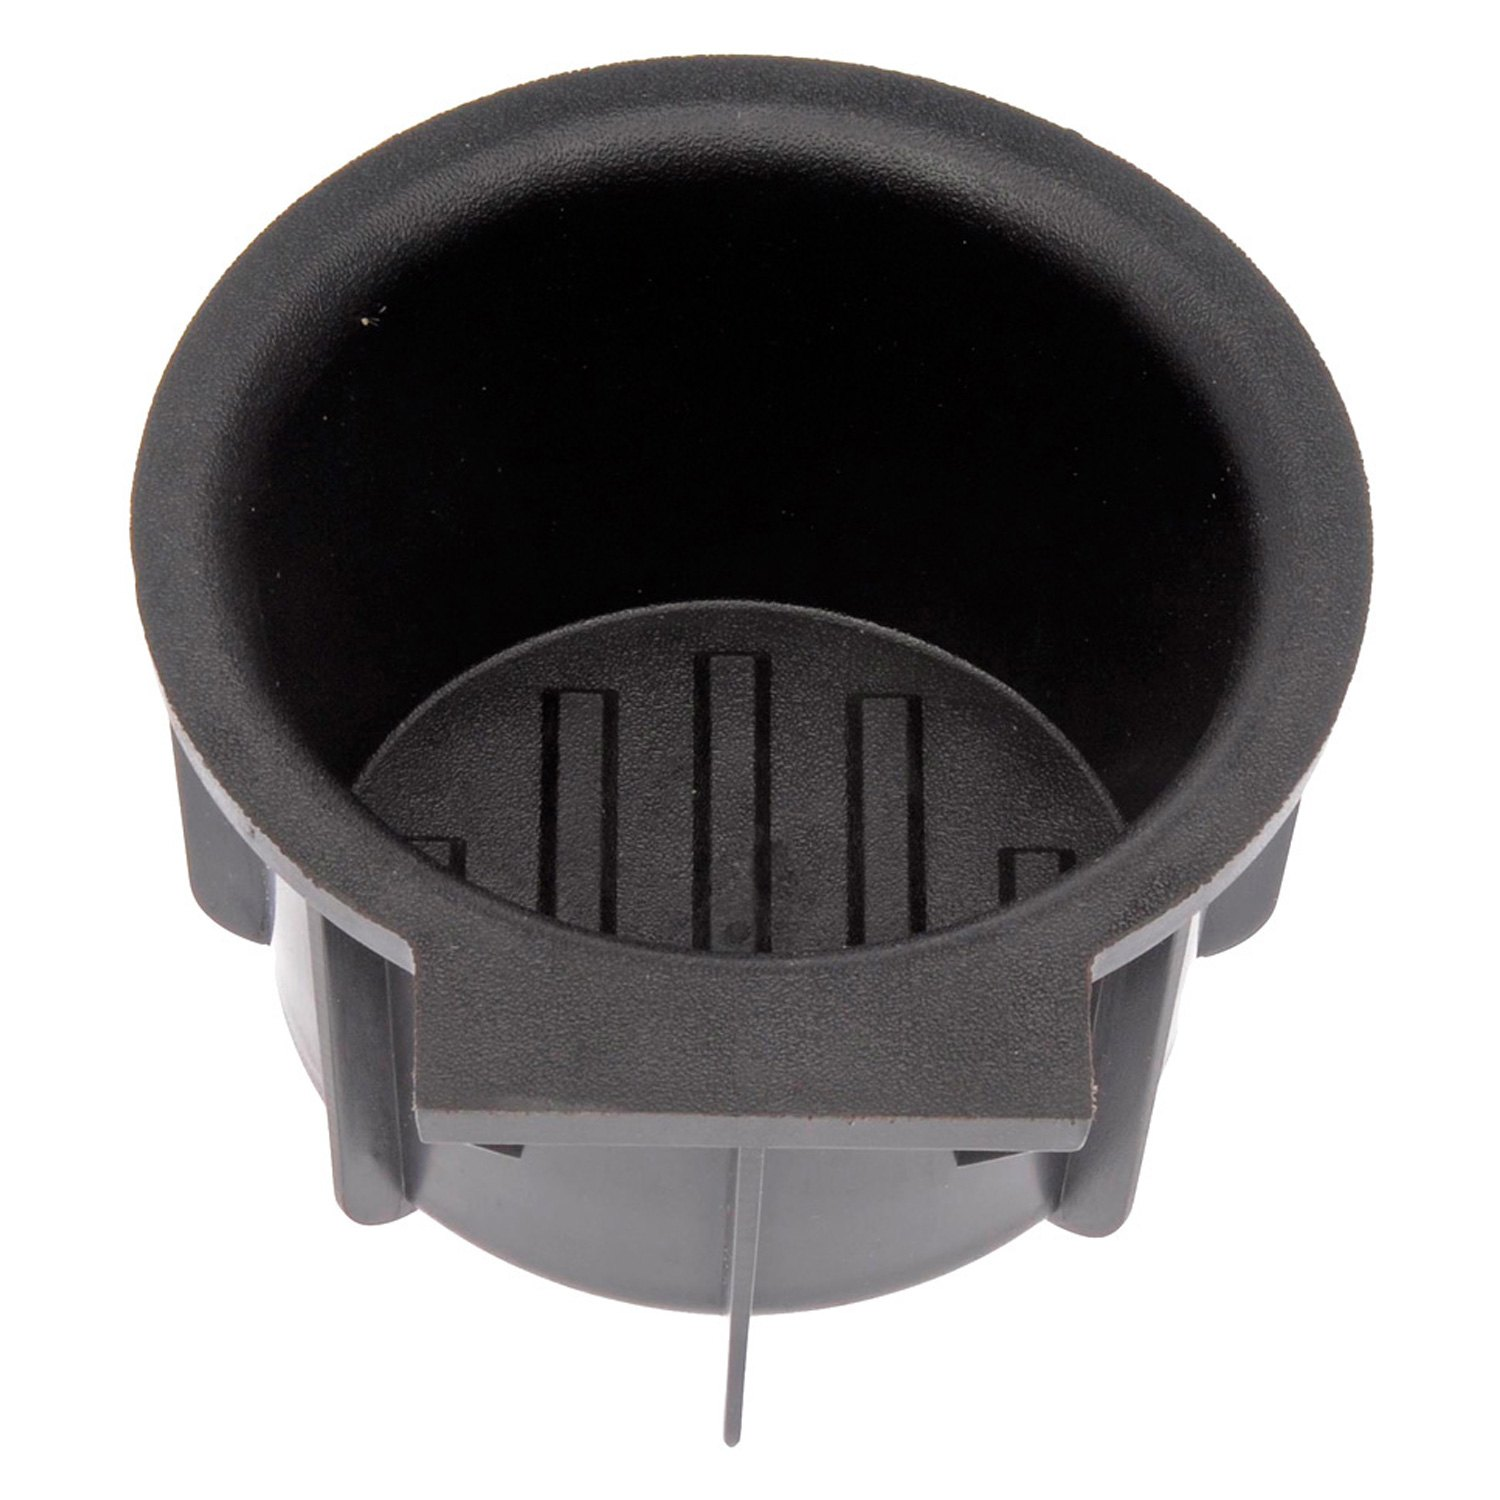 Dorman ford f 150 2013 front cup holder - 2013 ford f 150 interior accessories ...